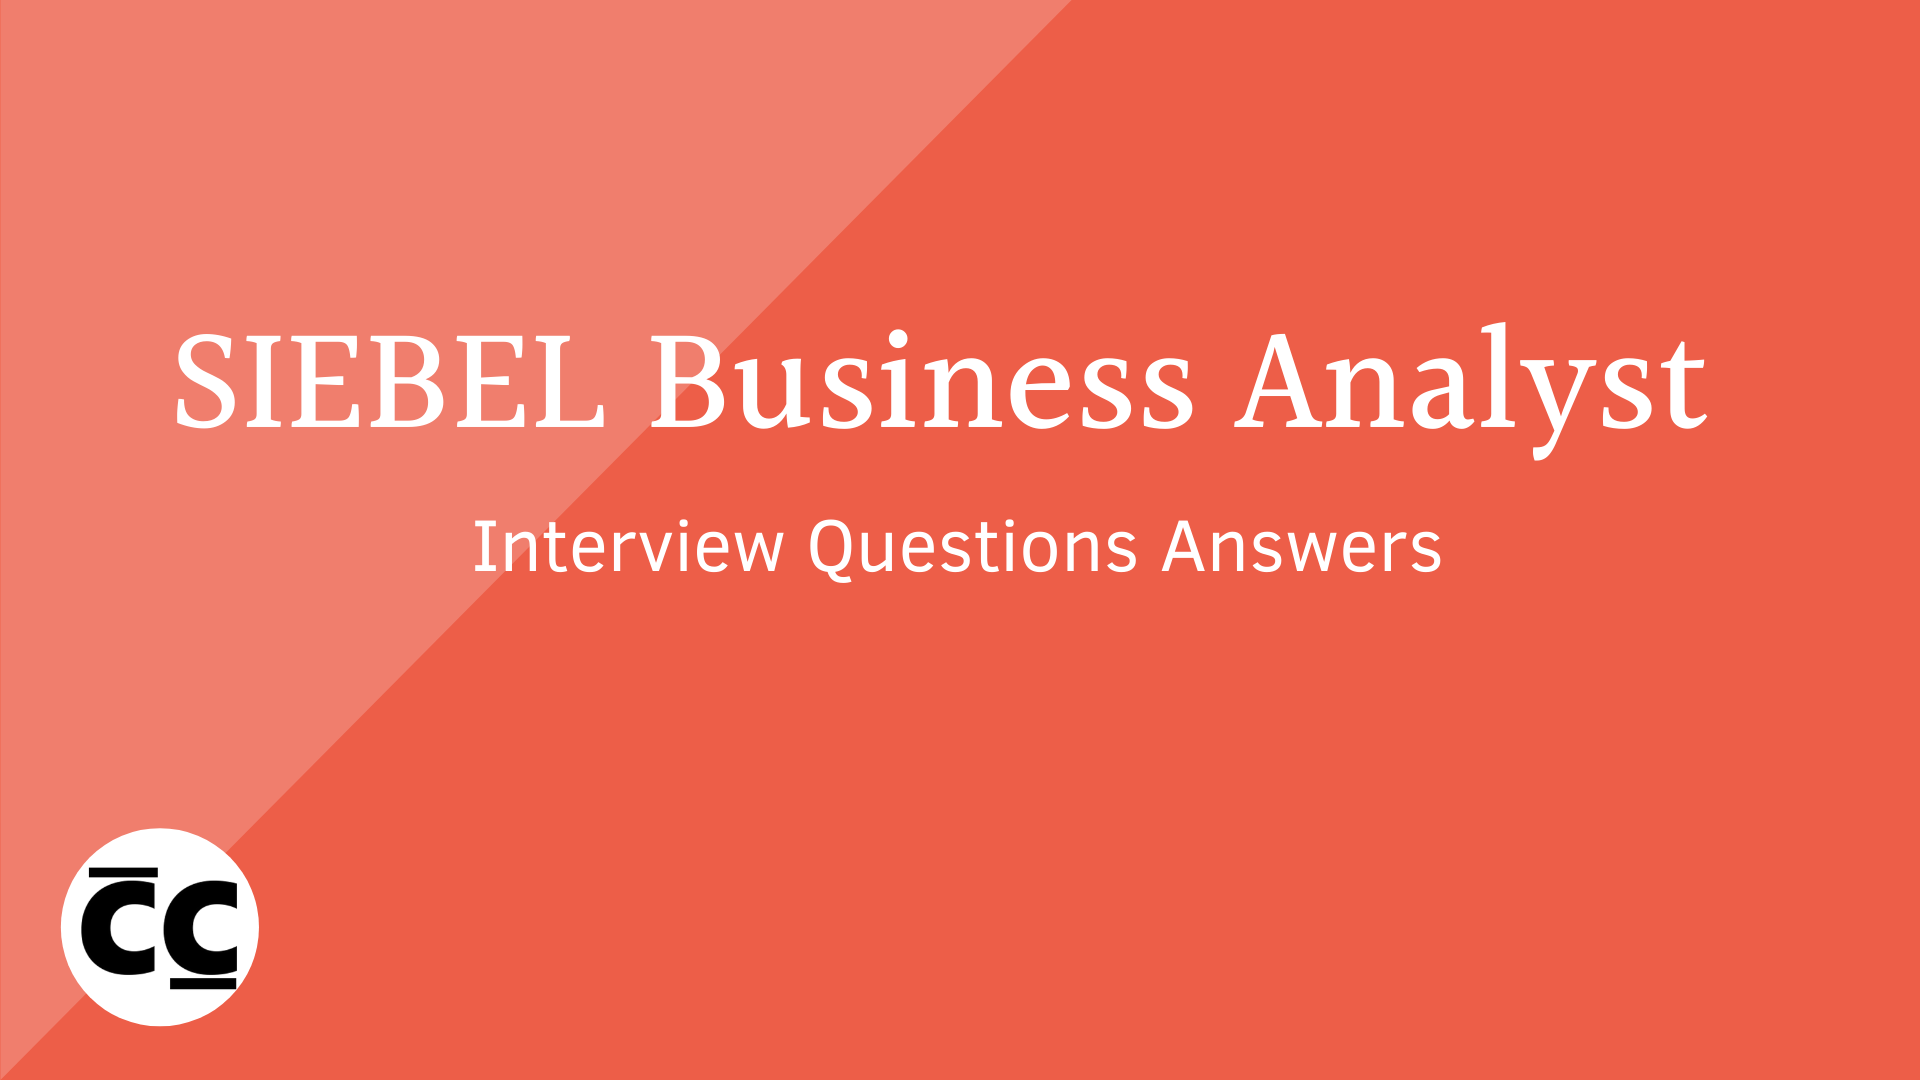 SIEBEL Business Analyst Interview Questions